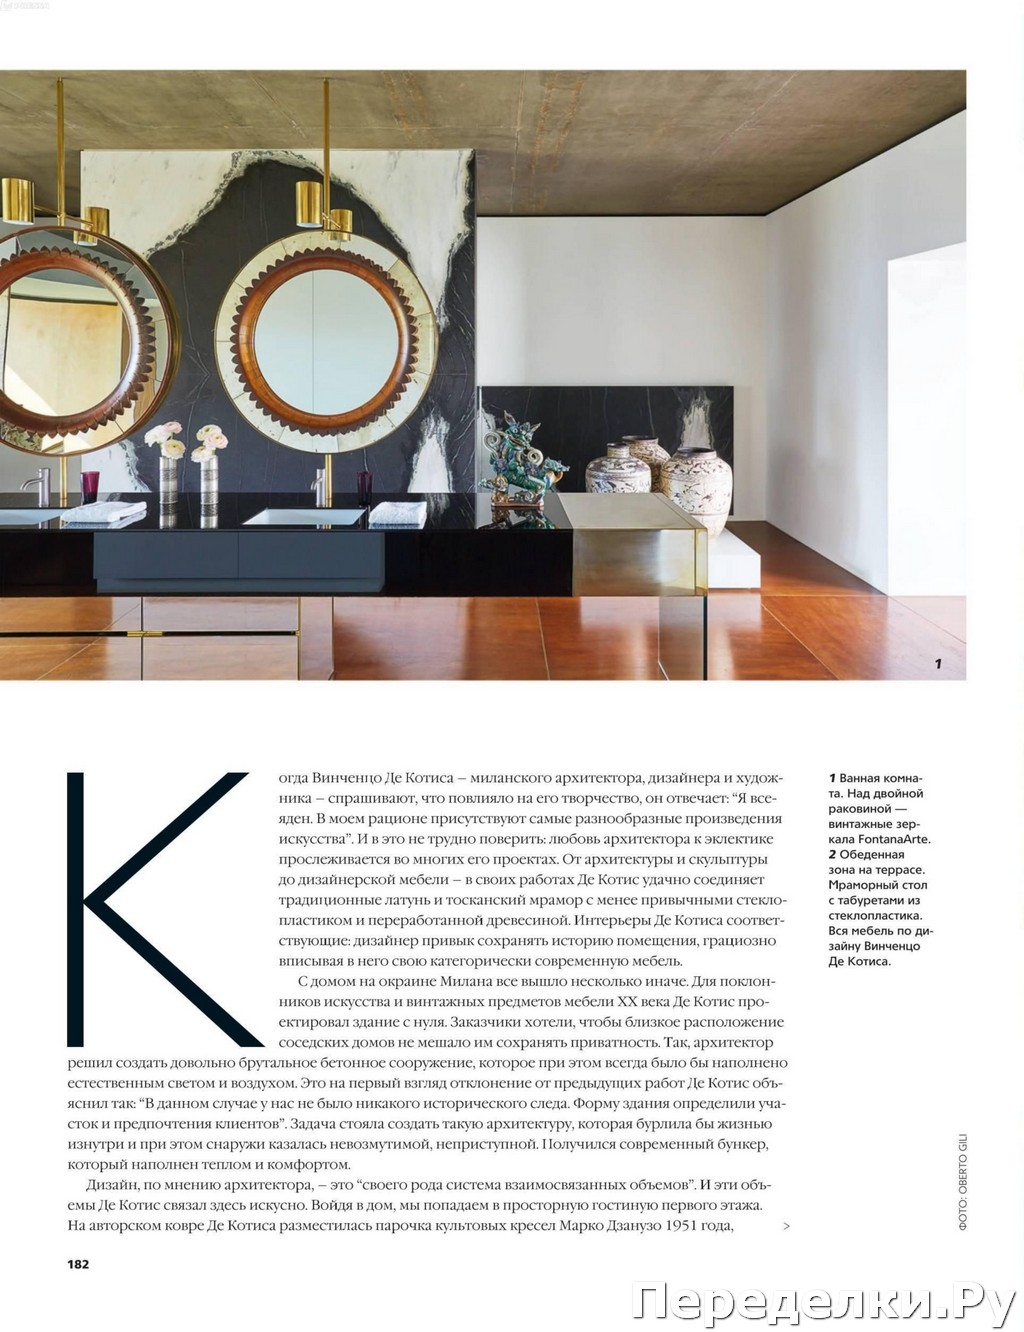 AD Architectural Digest 4 aprel 2020 177